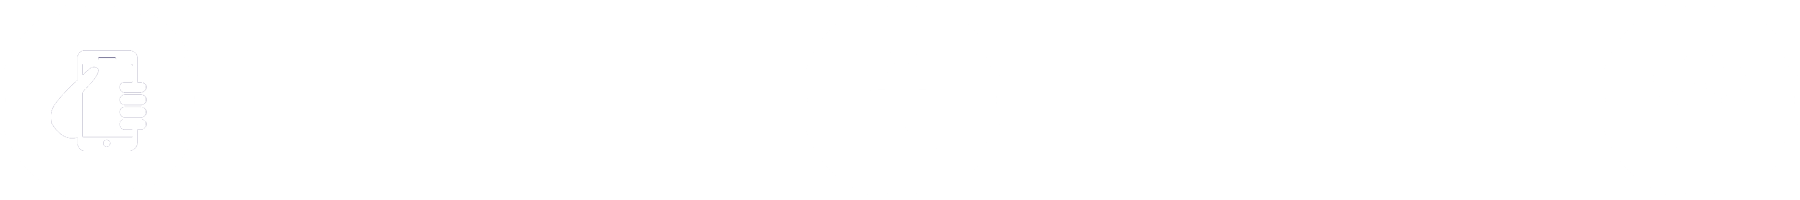 Information, Secure and Staff